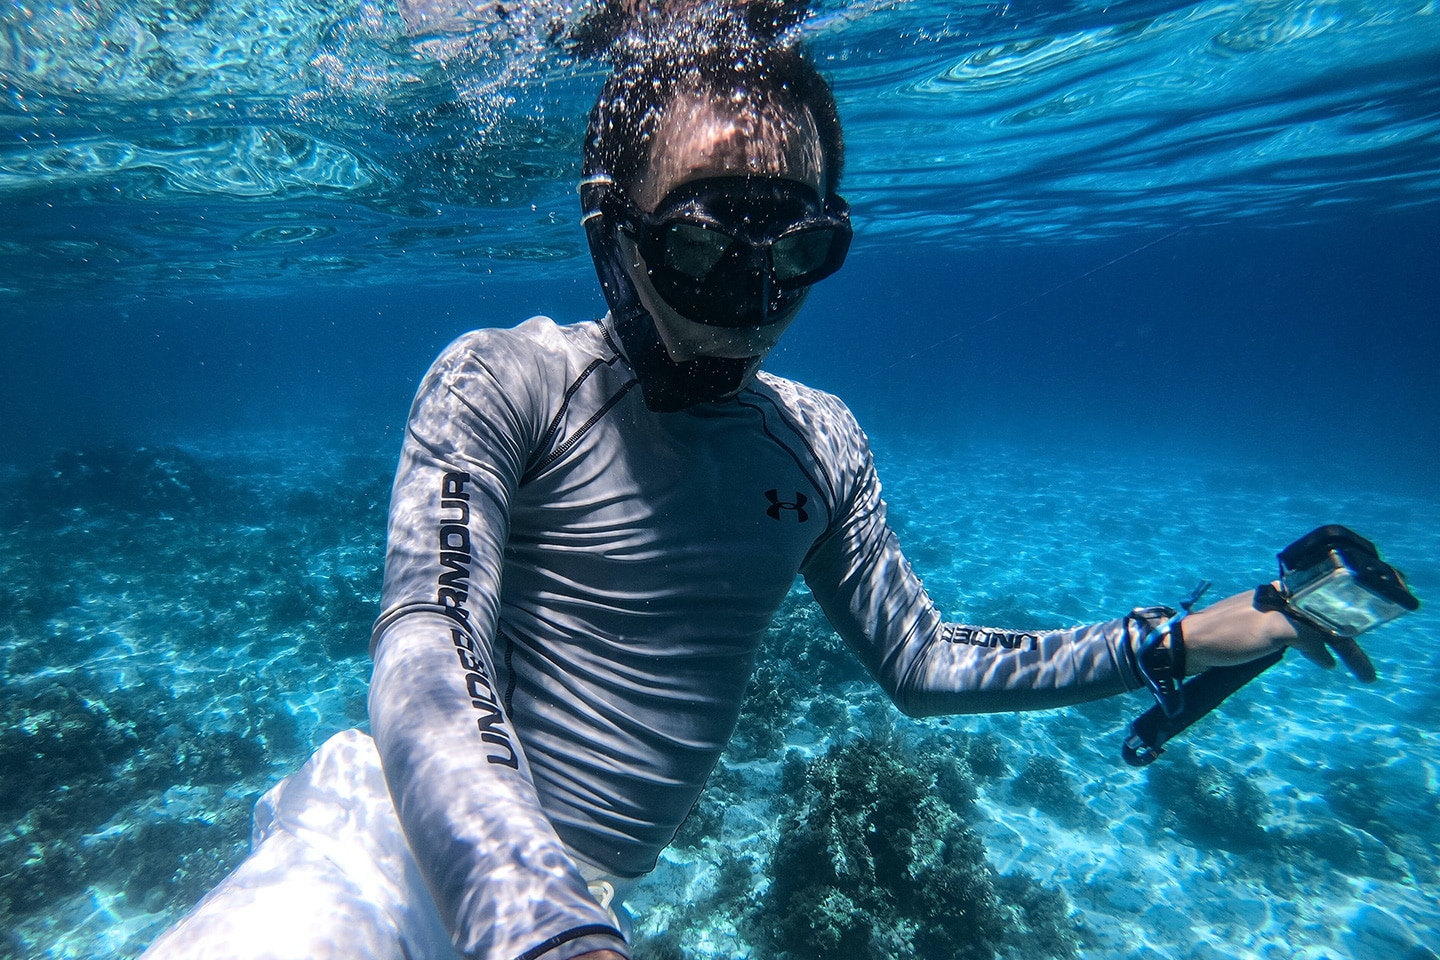 Man is snorkeling wearing rash guard top